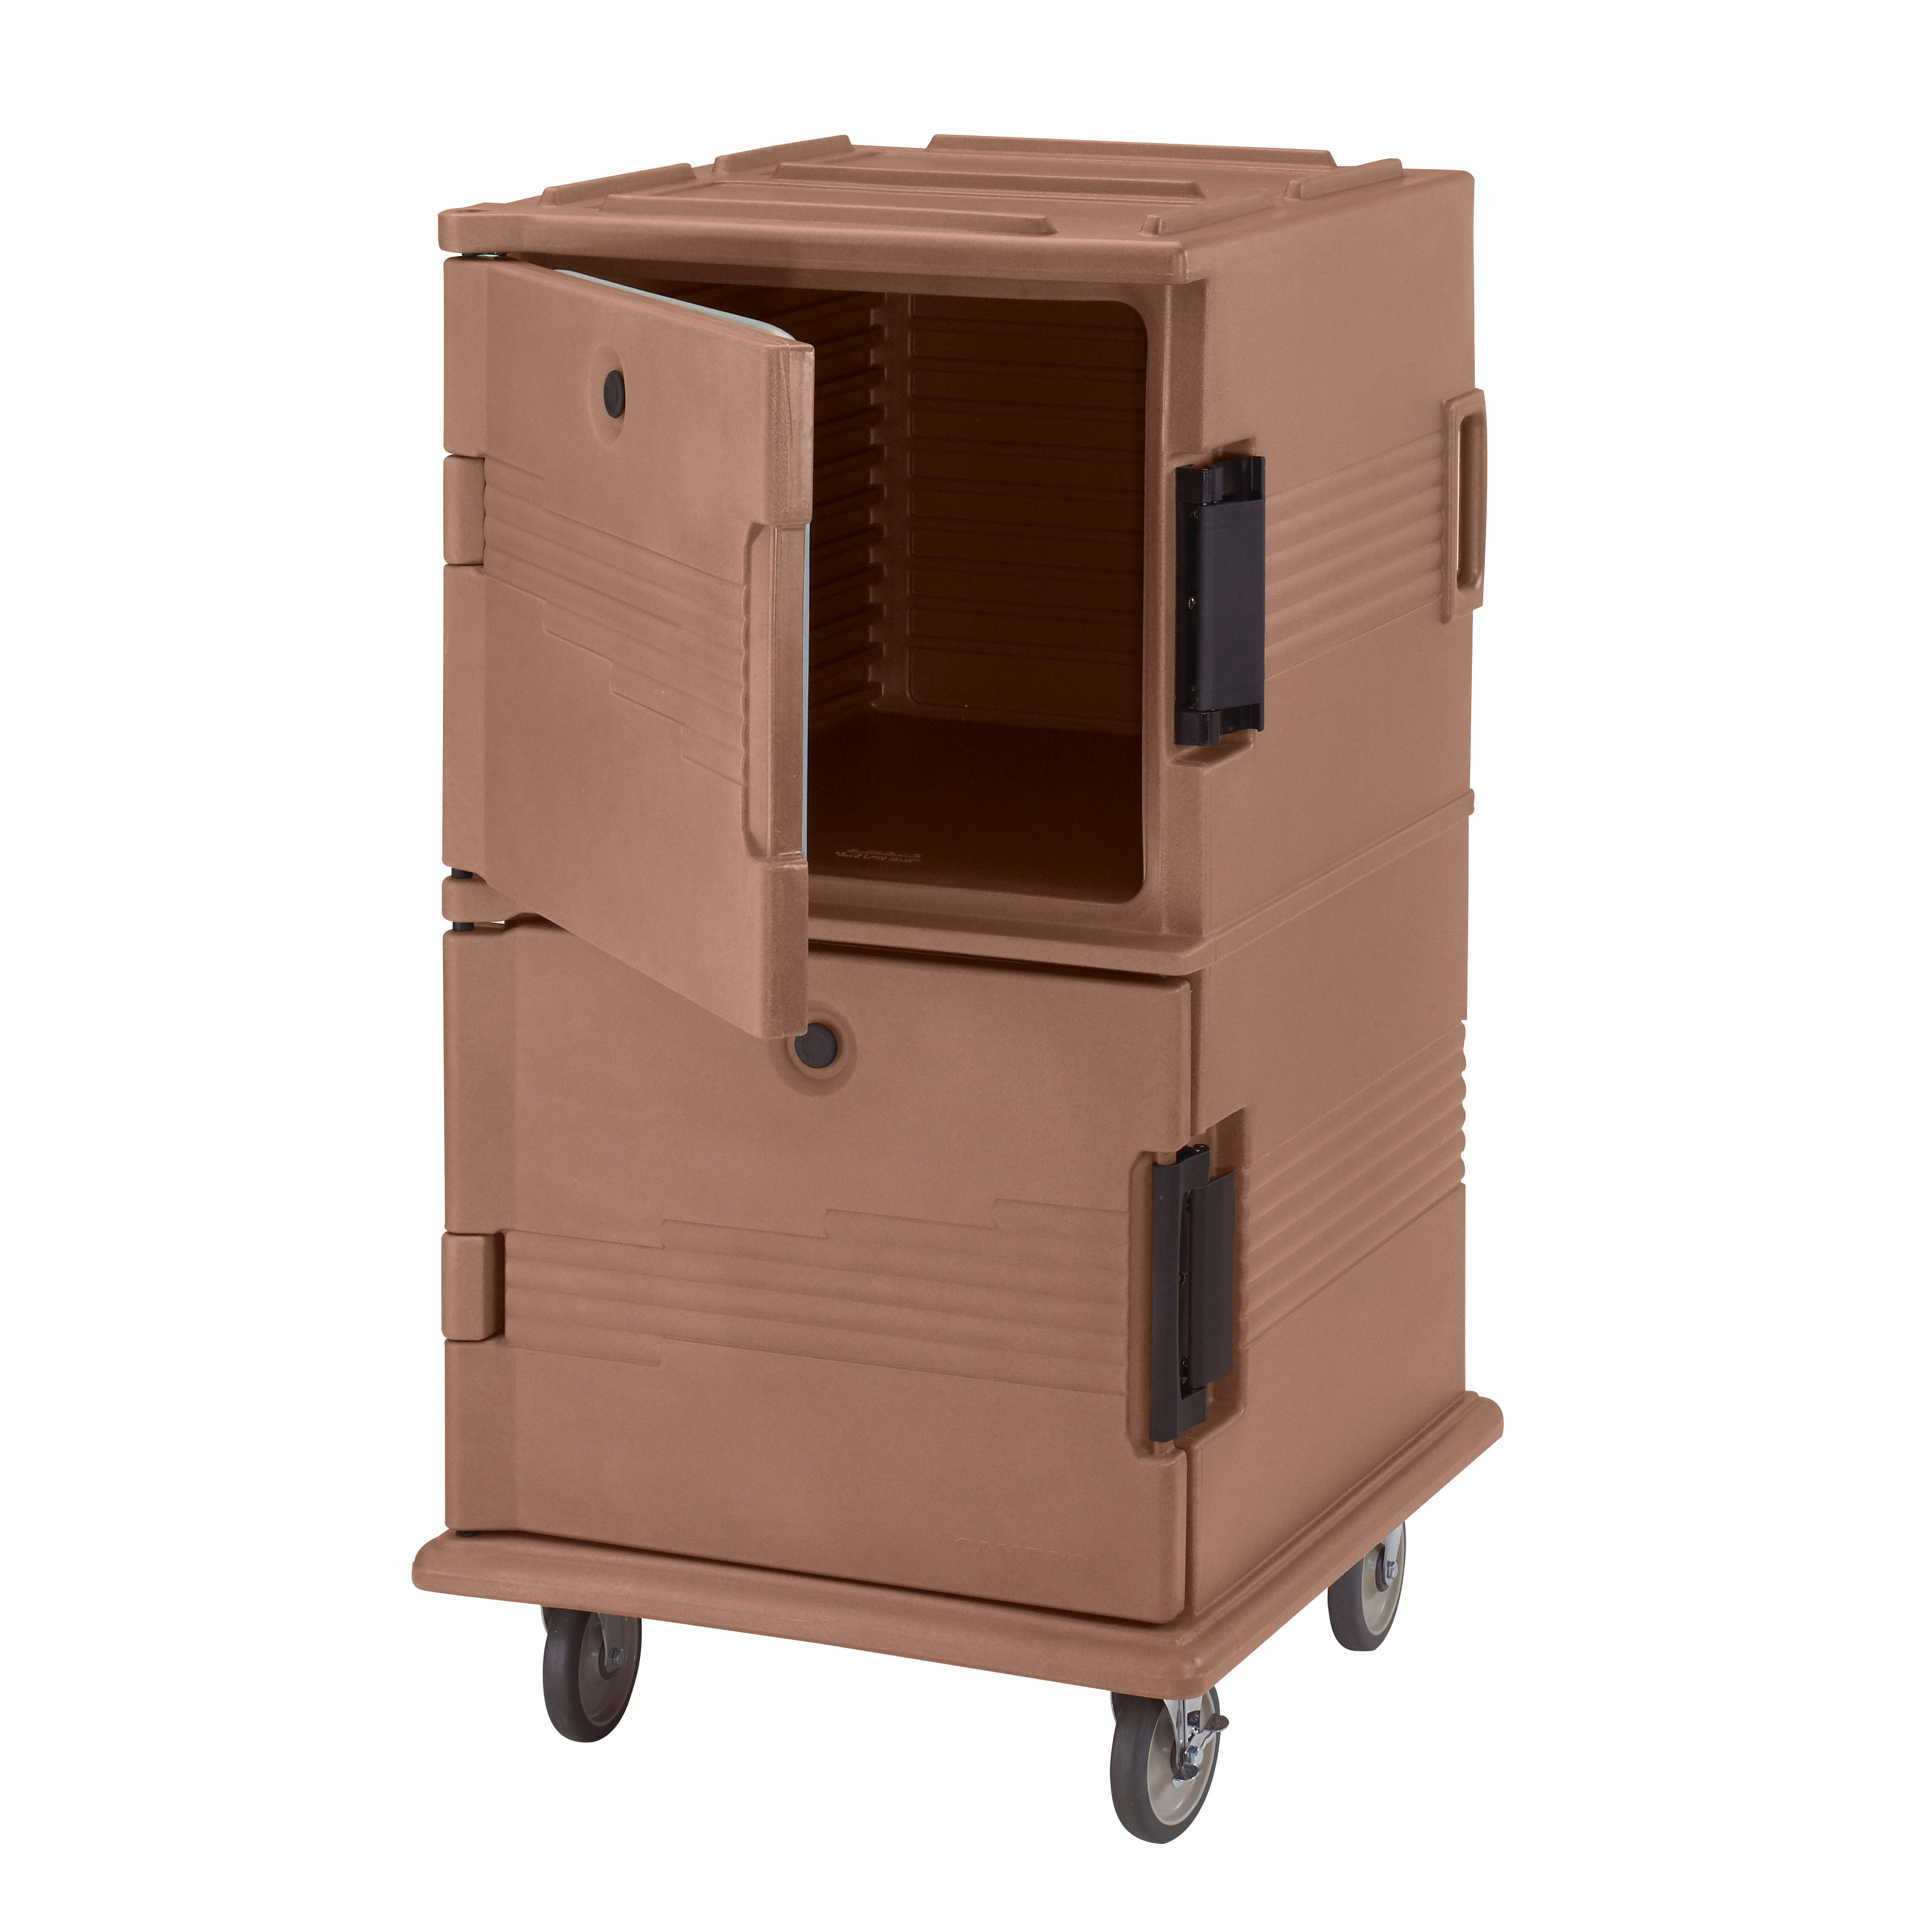 Cambro UPC1600157 proofing/holding cabinets